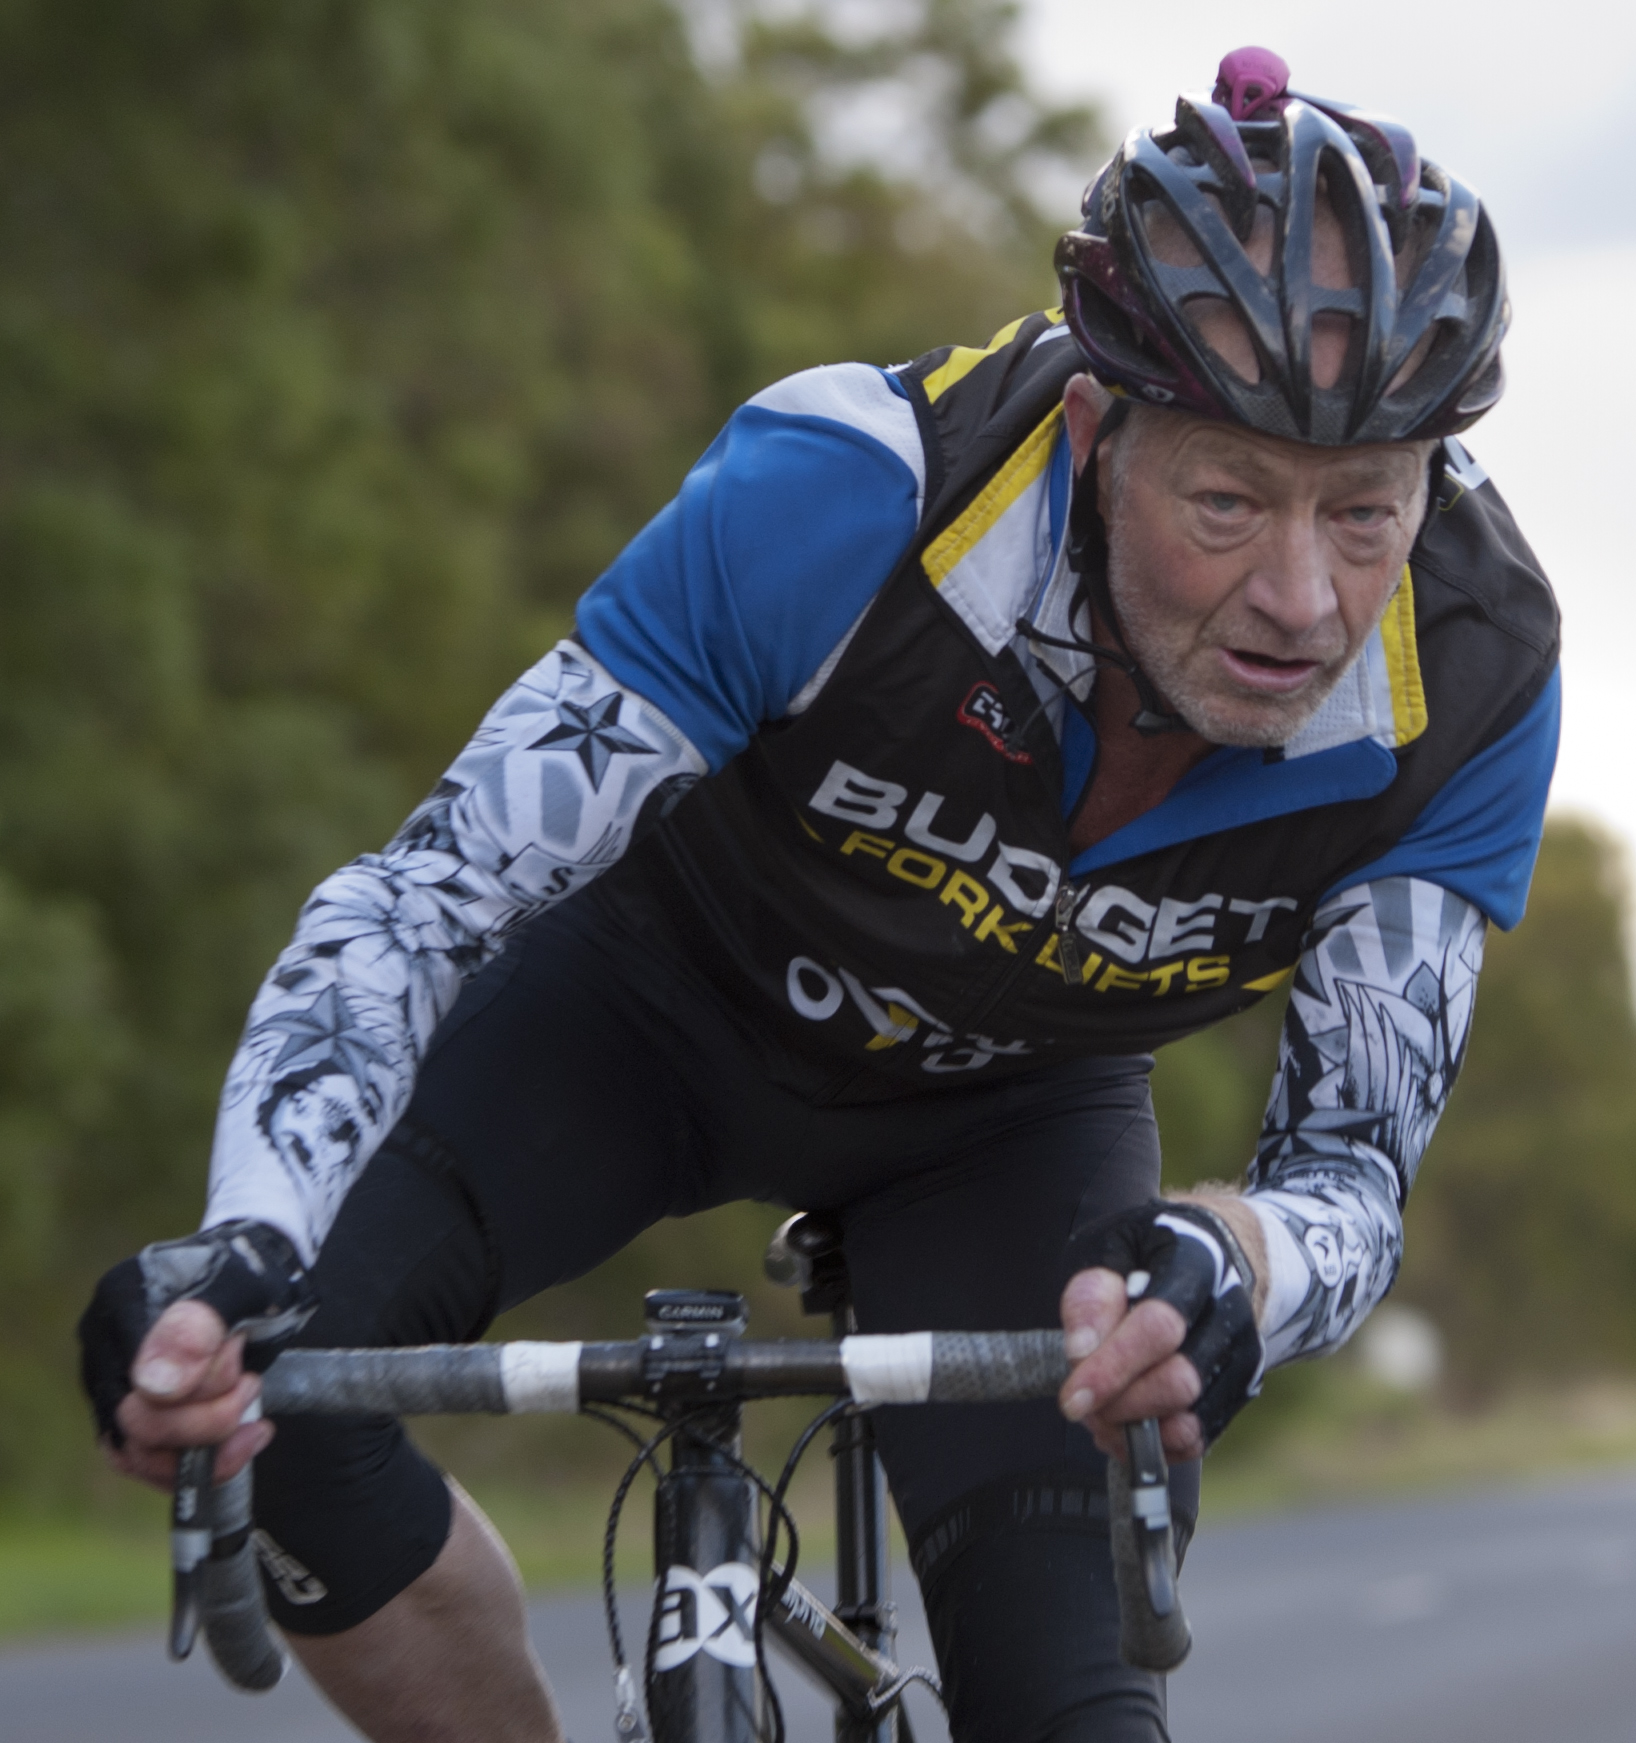 You've seen them before 6am on the roads in Darwin, MAMILs are everywhere and Nick Bird the Director of MAMIL the documentary is here to talk about them.